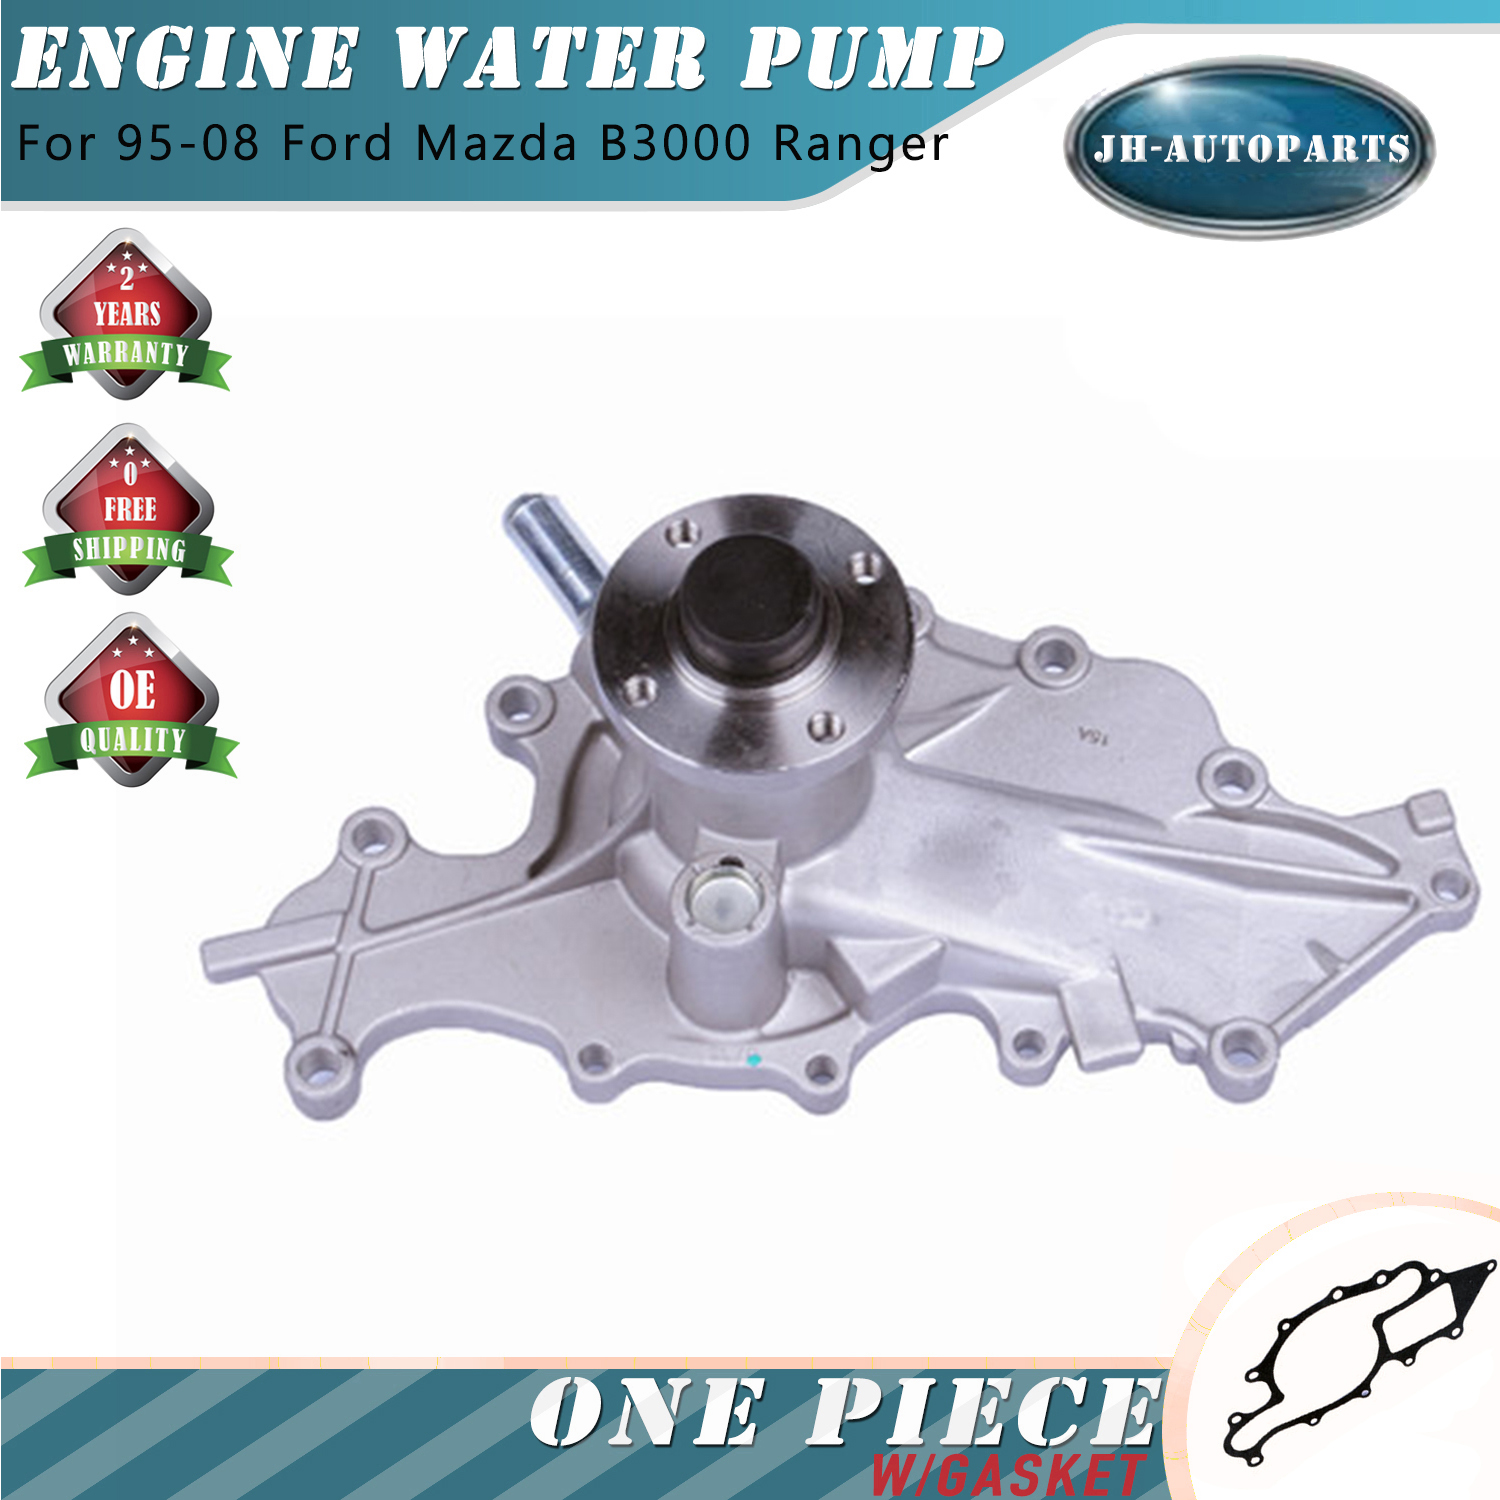 Water Pump With Gasket Fits 86-94 Ford Aerostar Ranger 1994 Mazda B3000 3.0L OHV